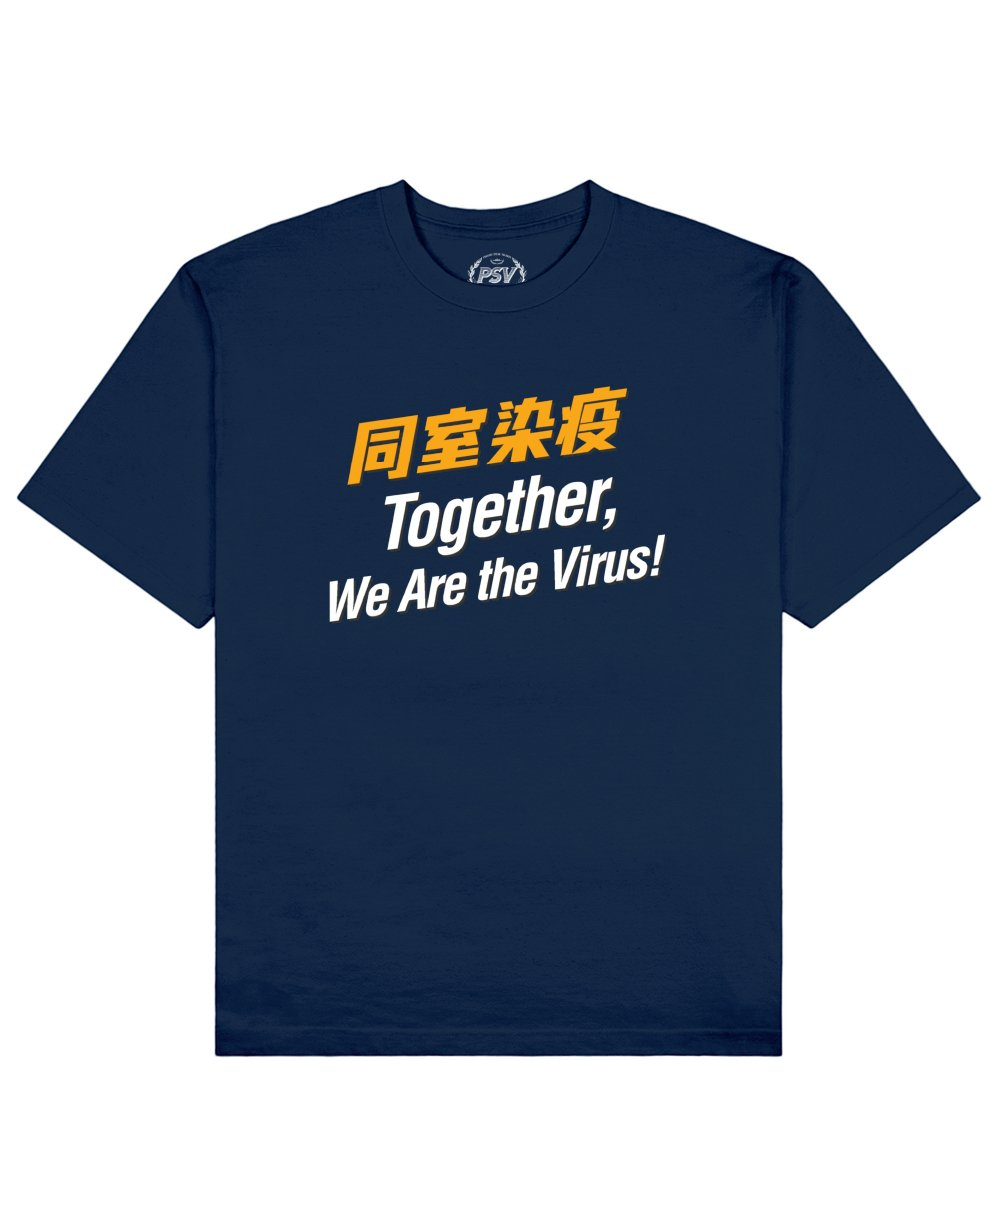 Together, We Are the Virus! Print T-Shirt in Blue - T-Shirts - PSV - BRANMA